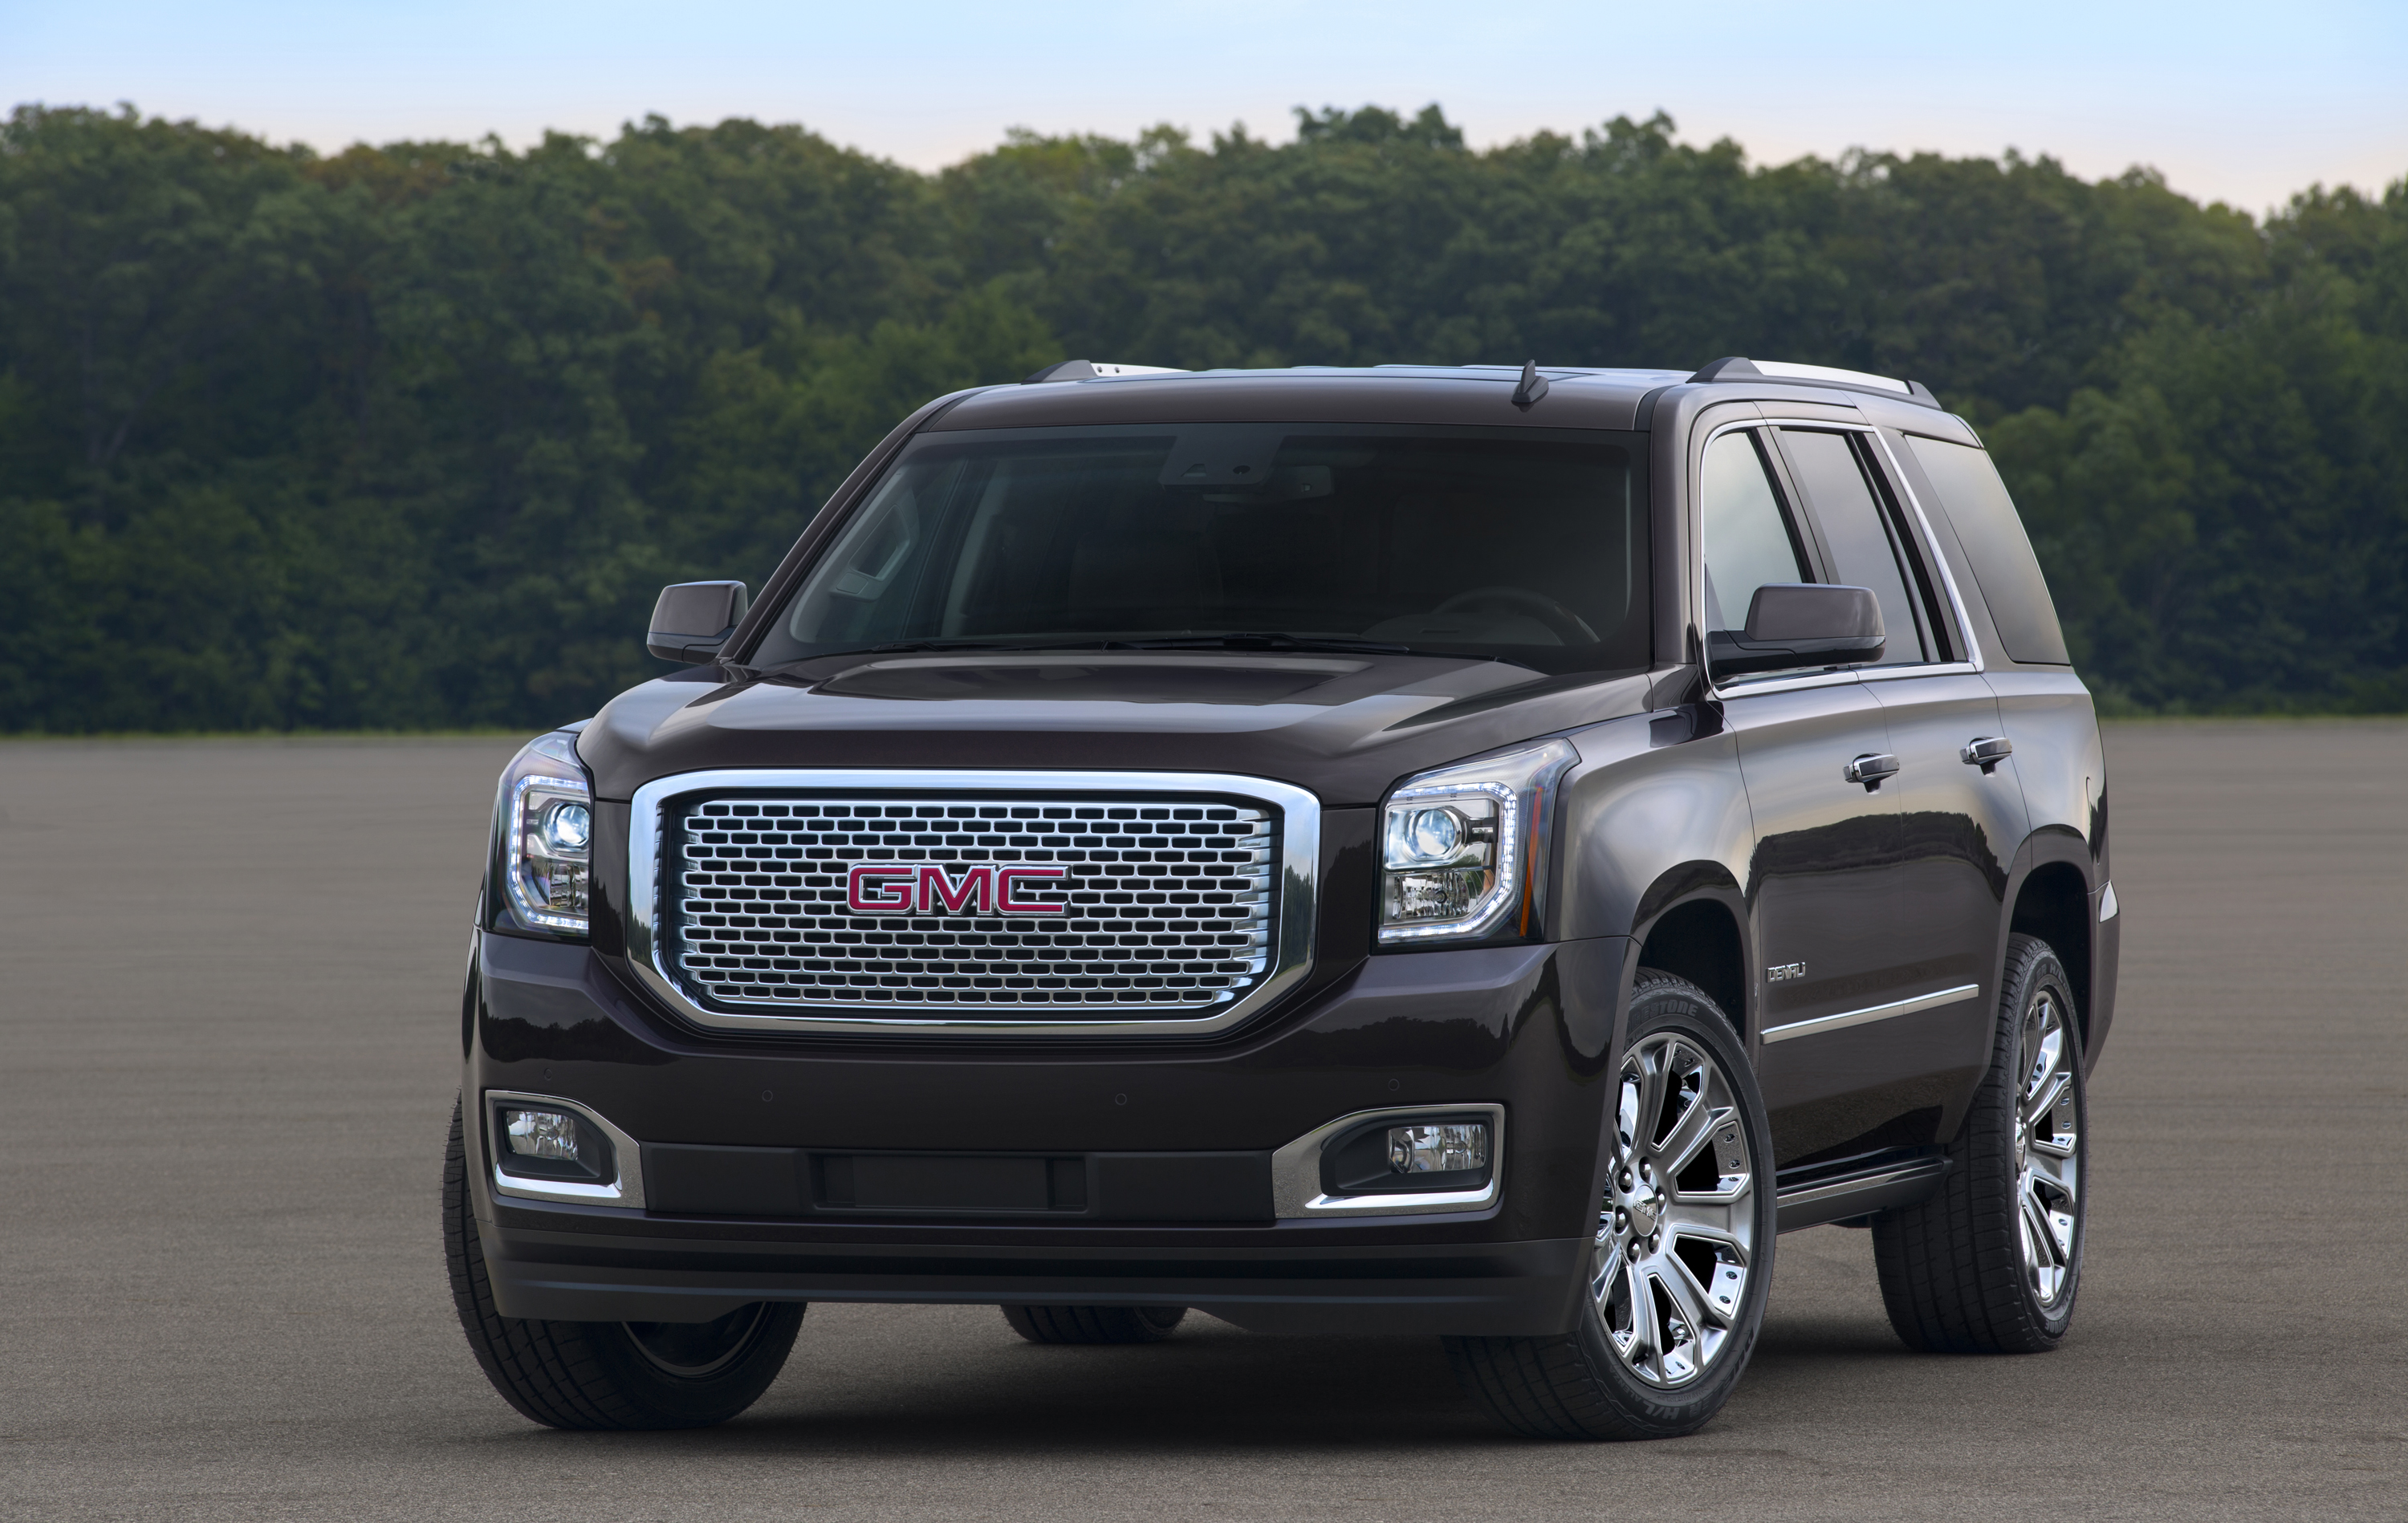 sep gmc all content detail us canyon comfortable interior connected terraininterior passengers black is jet midtruck en and in side pages news media